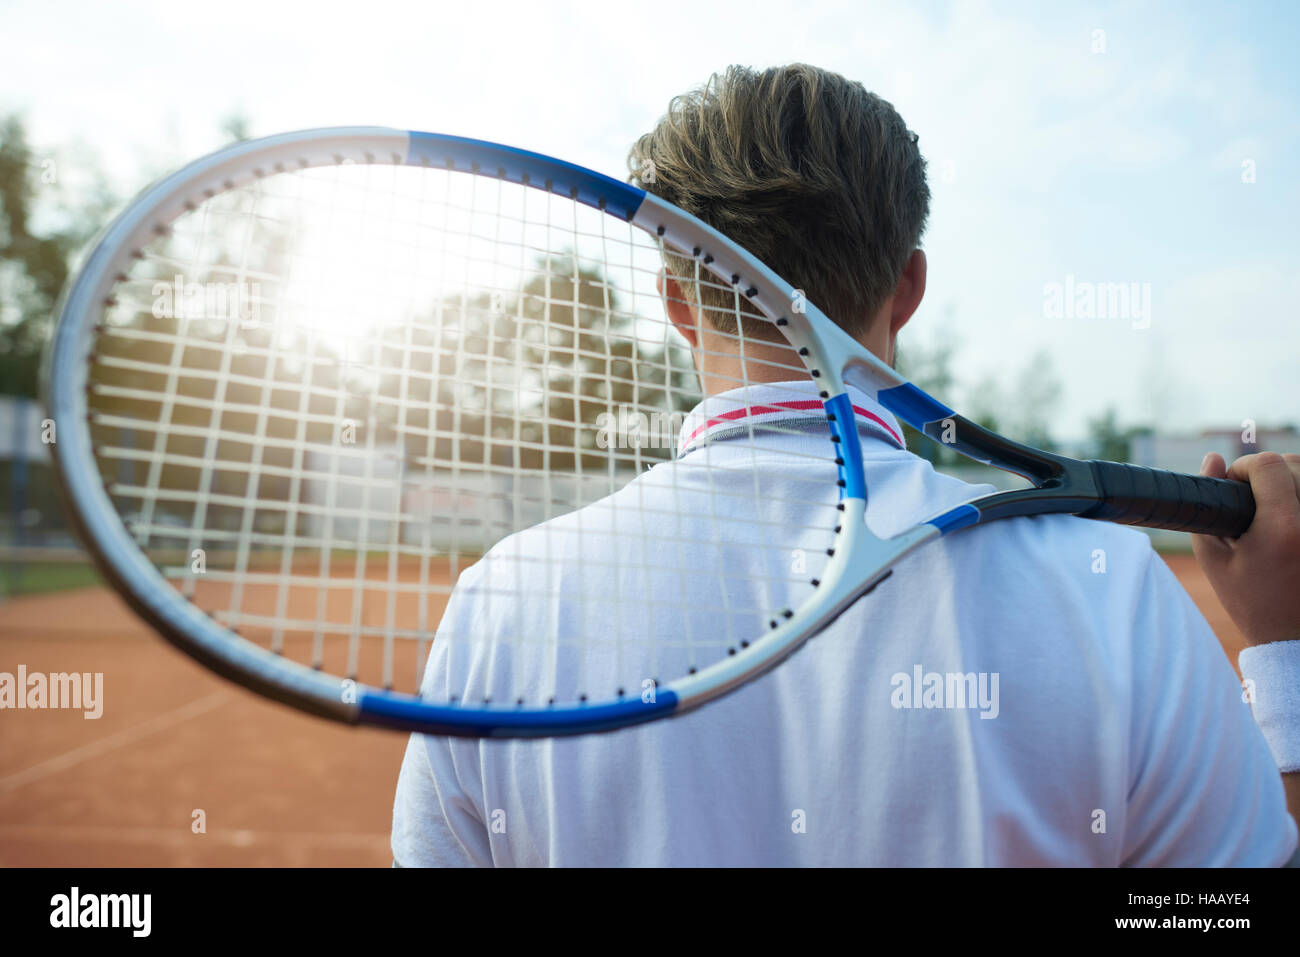 L'homme est maintenant une raquette de tennis Photo Stock